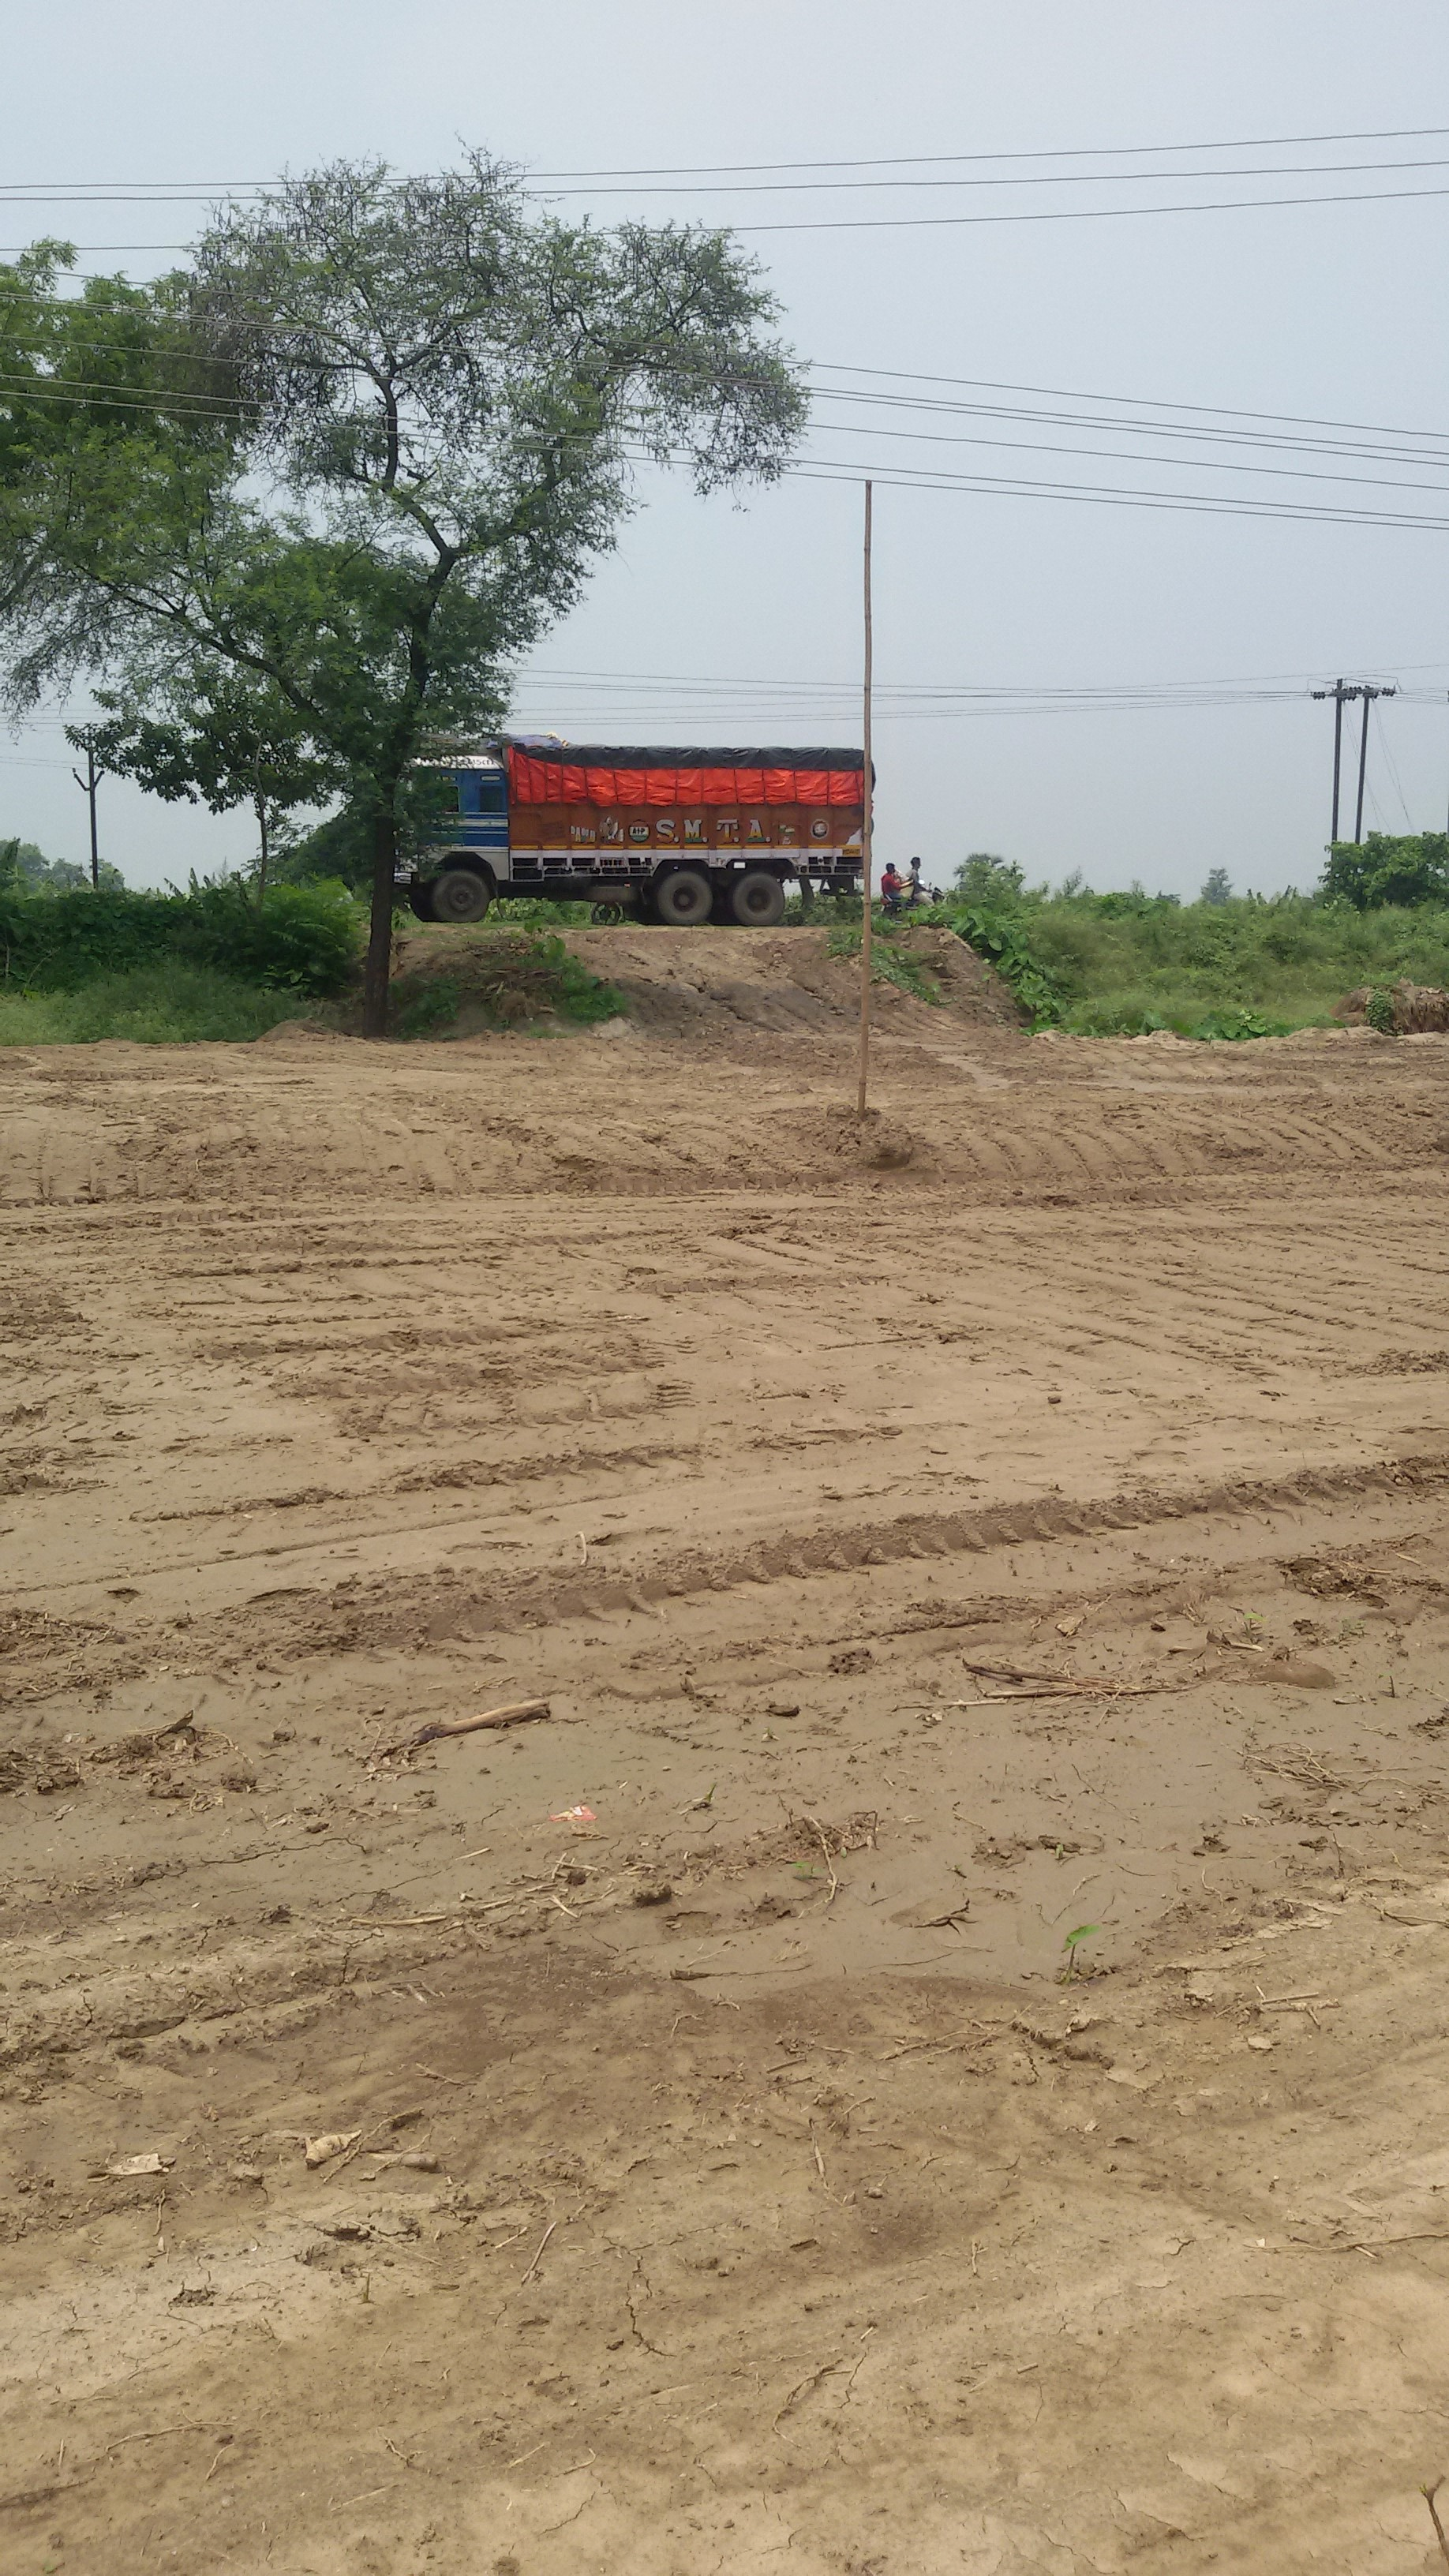 Commercial Land Sale Near Naugachia On National Highway No. 31,assam Road, In Bhagalpur District